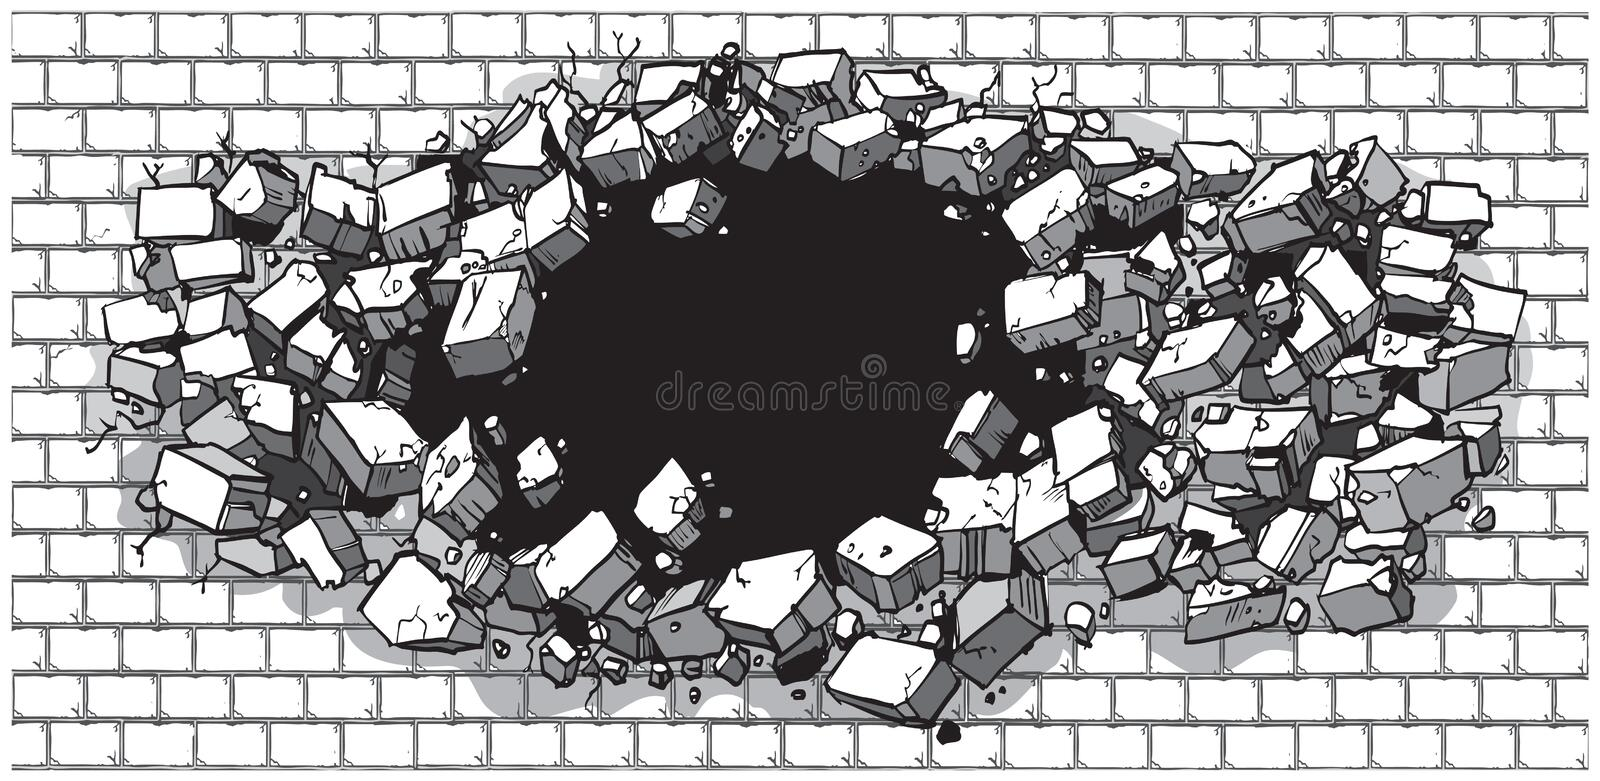 Hole Breaking Through Wide Brick Wall royalty free illustration